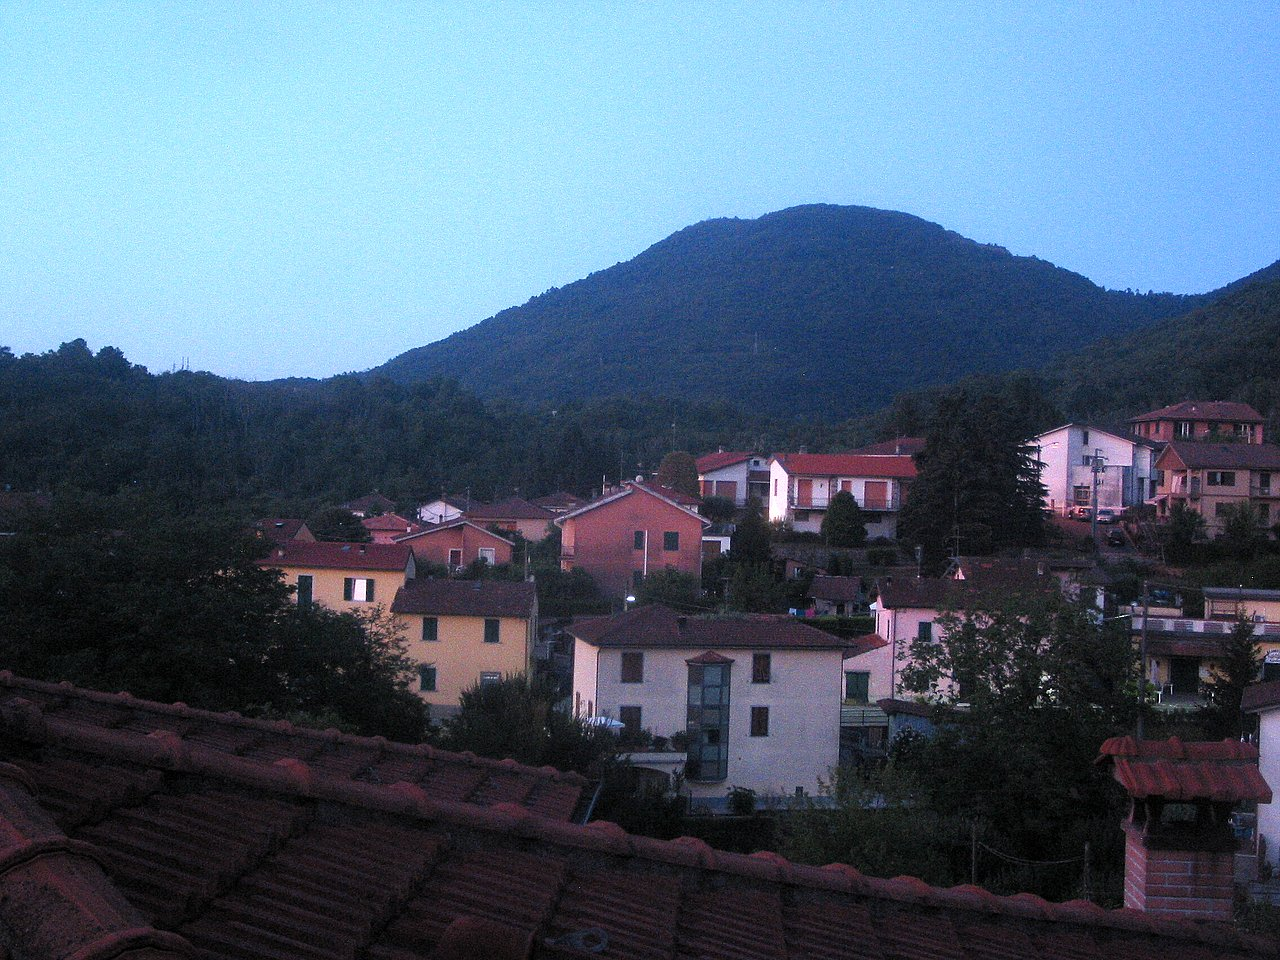 http://www.sanbenedettometeo.it/WD/webcamimage.jpg